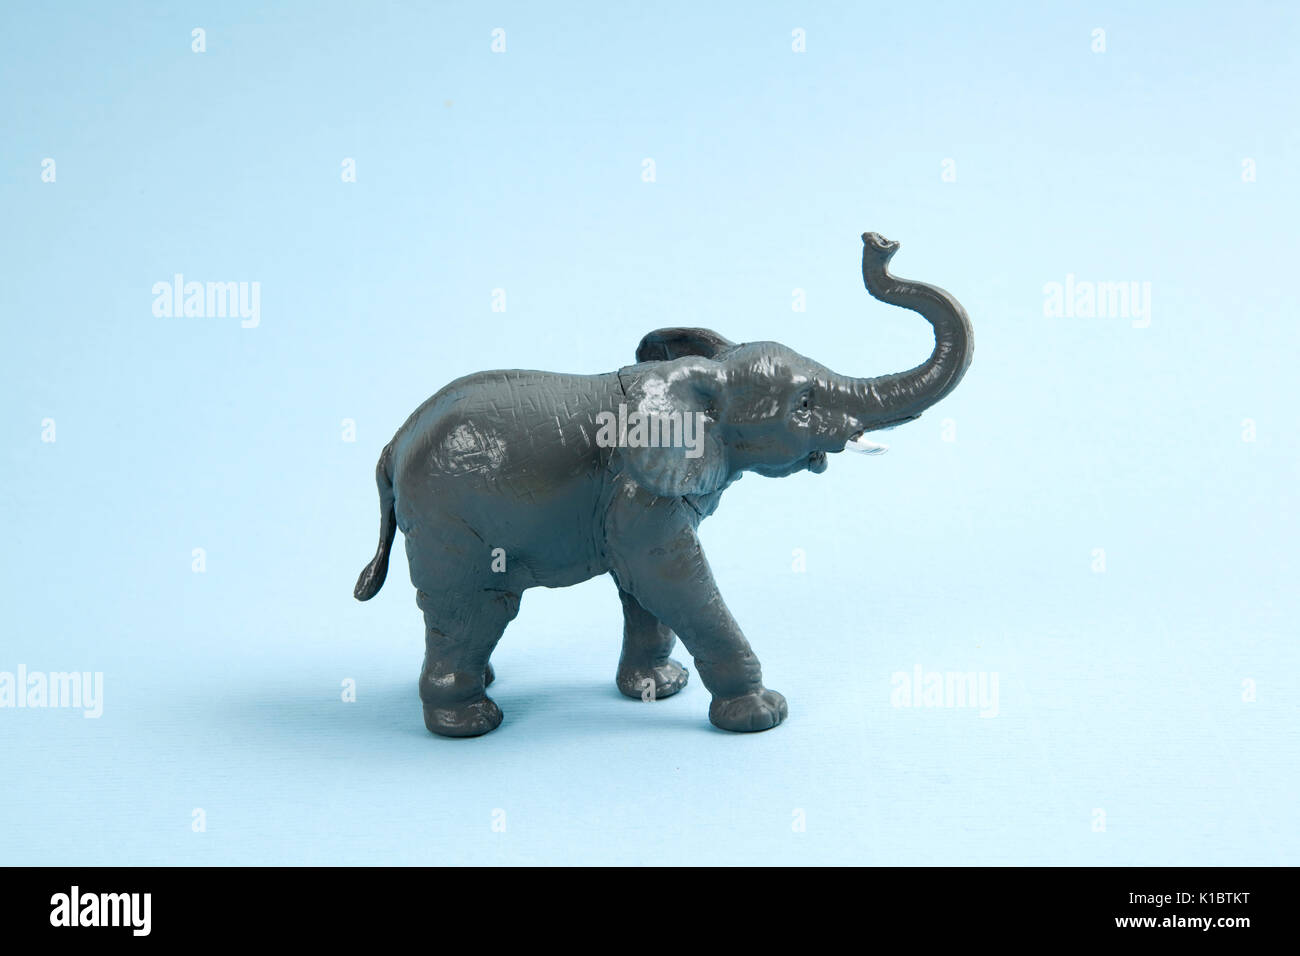 a plastic elephant on a vibrant blue background. Minimal color still life photography - Stock Image